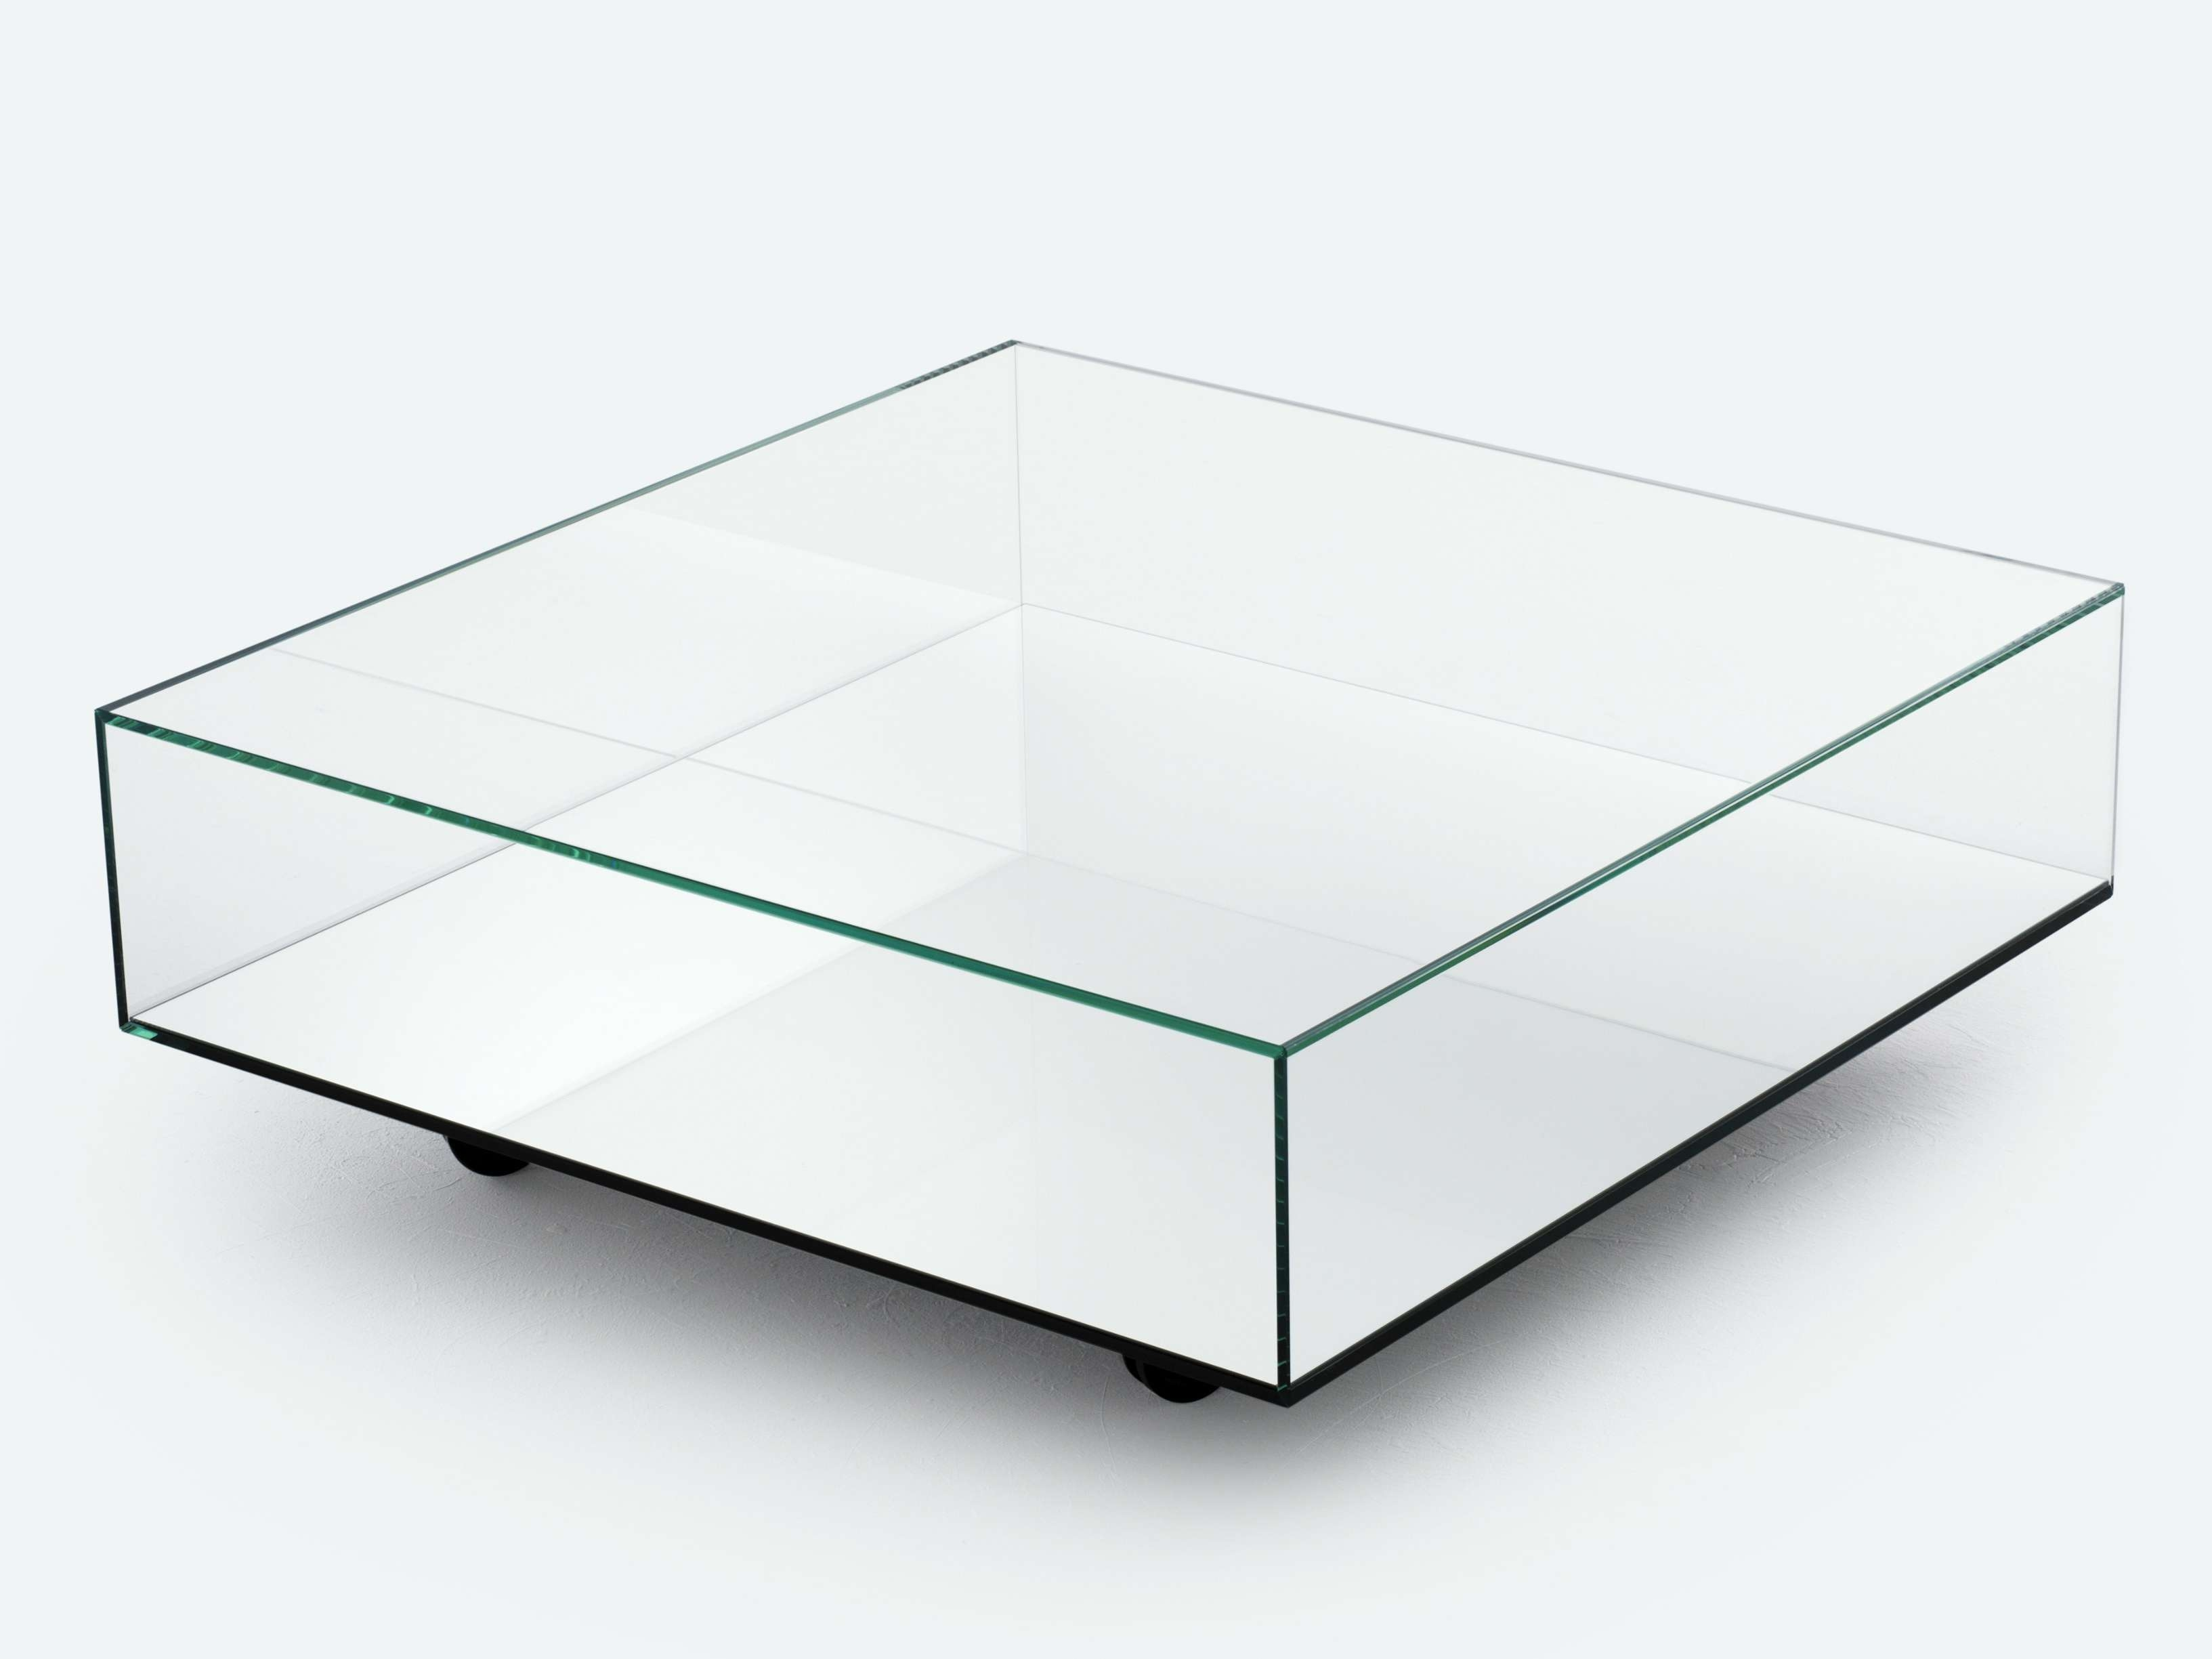 Well Known Low Coffee Table With Storage Throughout Square Low Profile Mirrored Glass Top Coffe Table With Storage And (View 5 of 20)